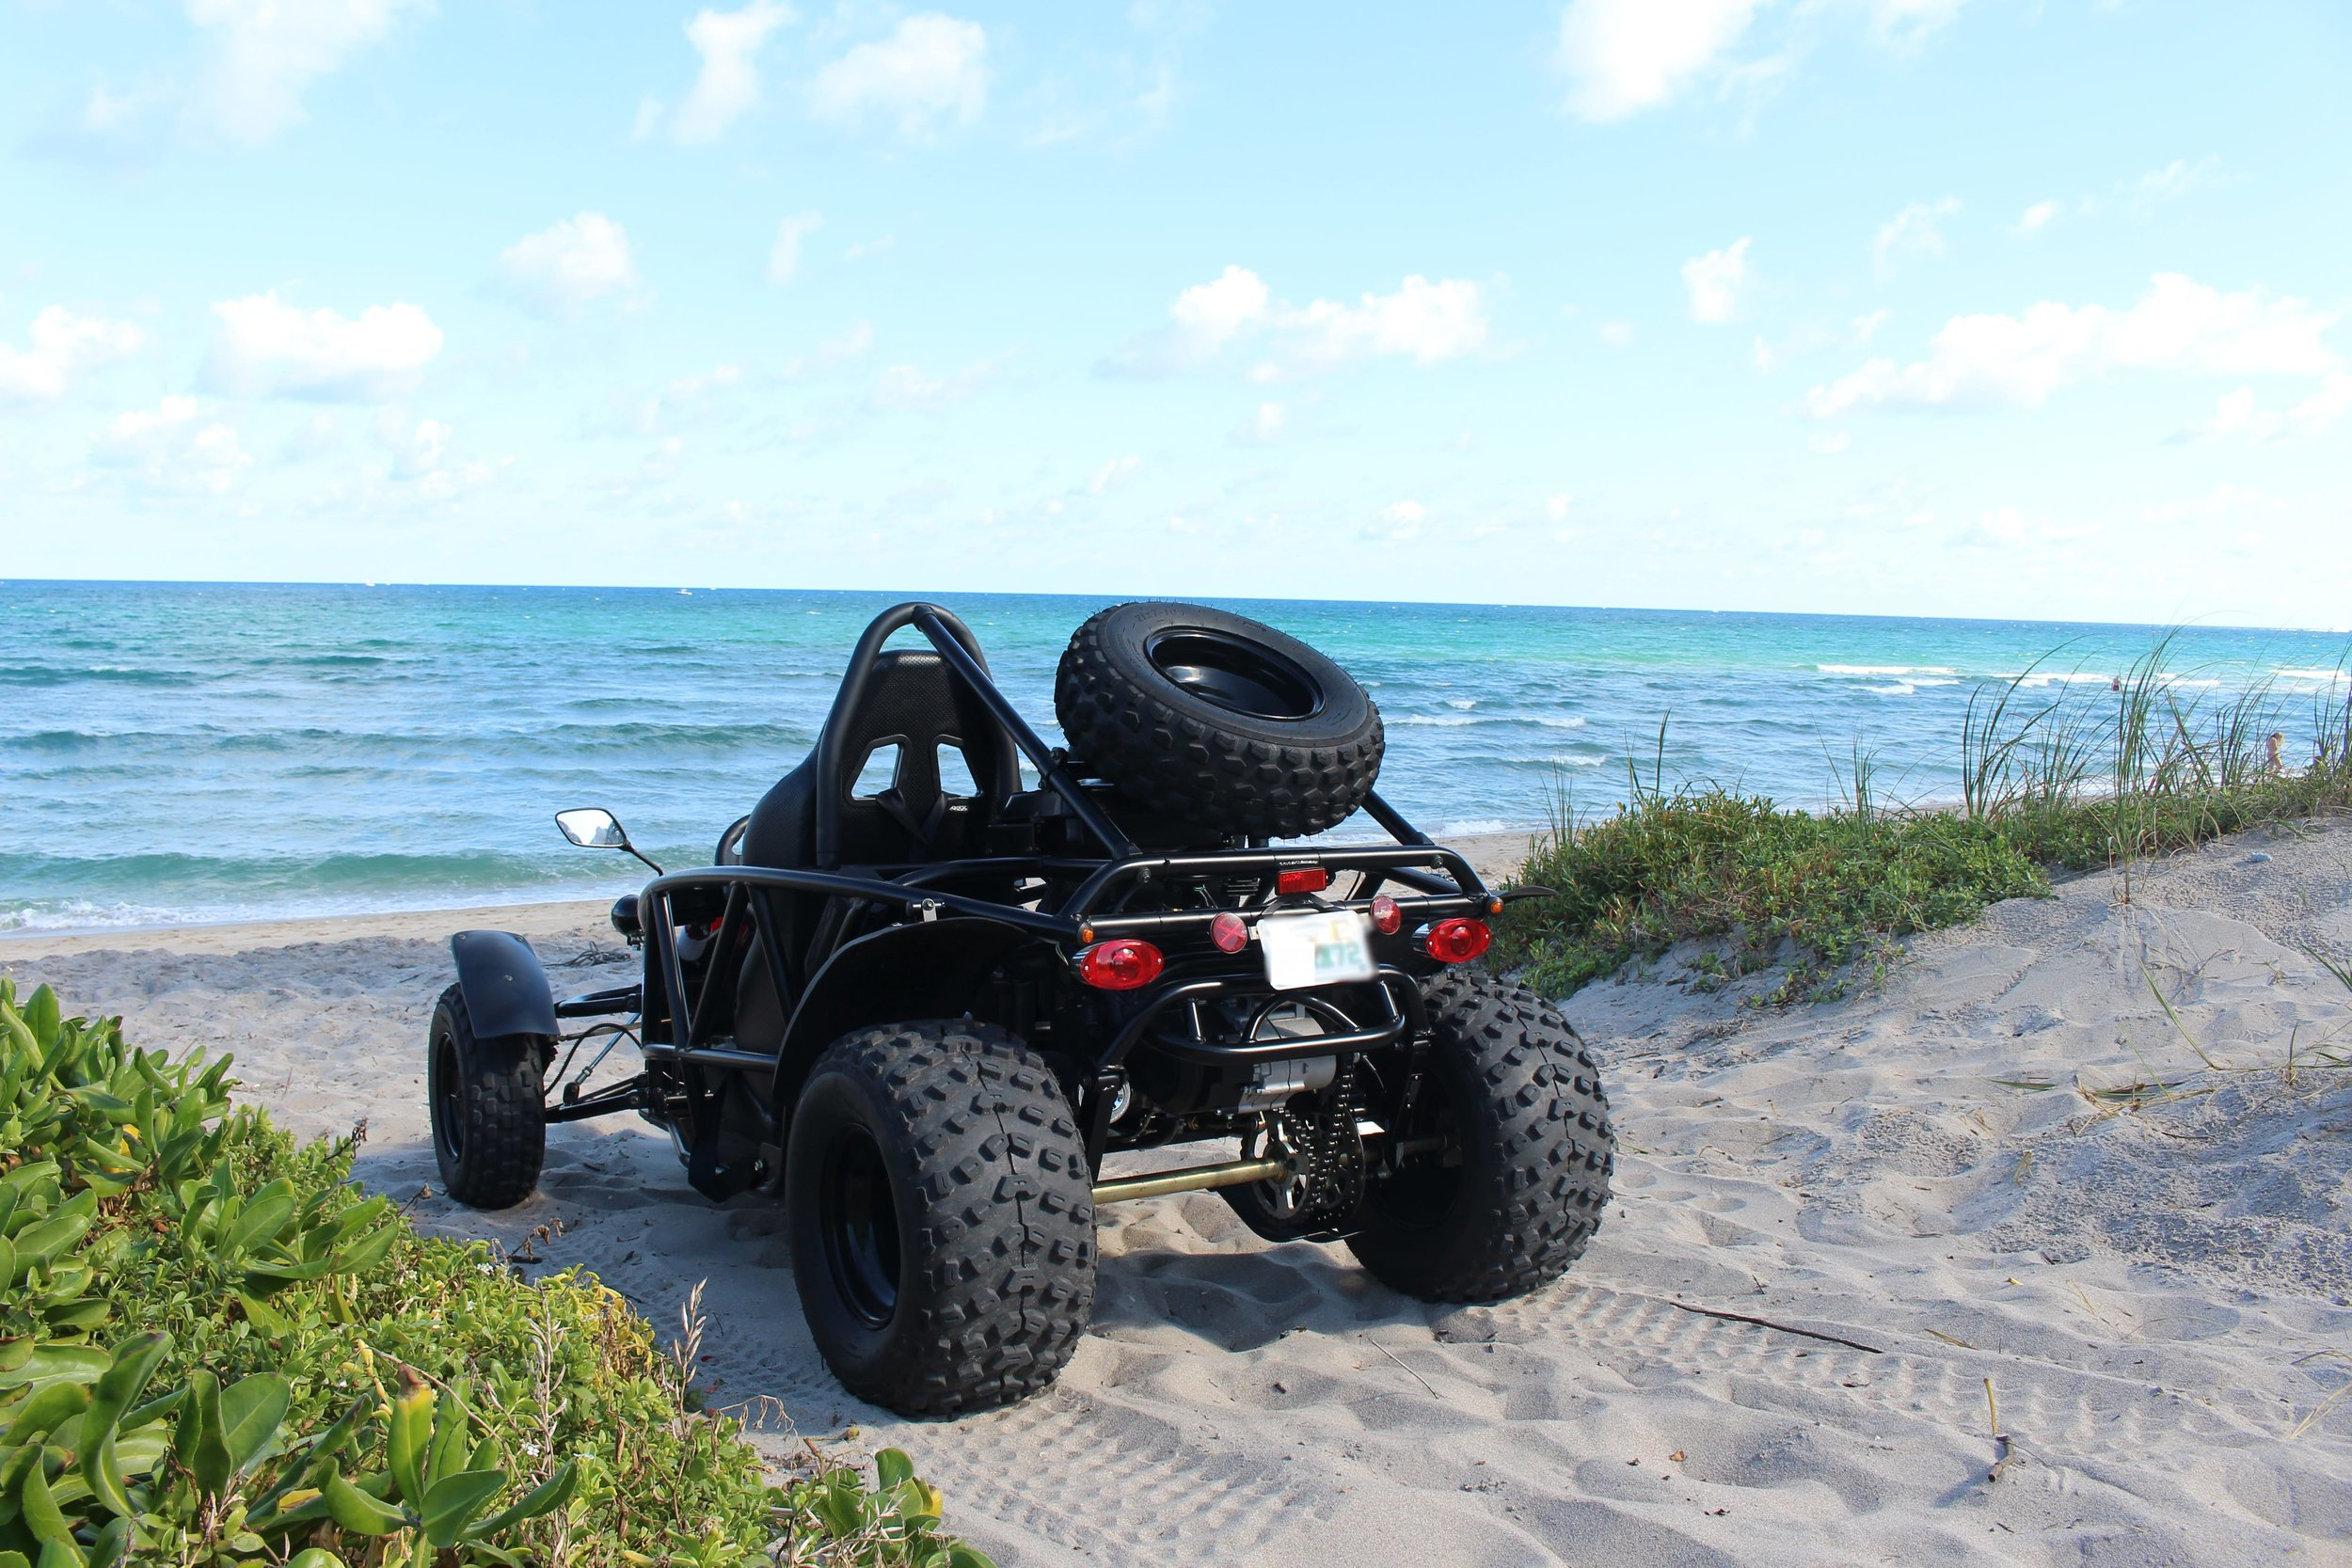 Kart Cross Buggy Build We Built A Street Legal Go Kart Then Drove It On The Beach